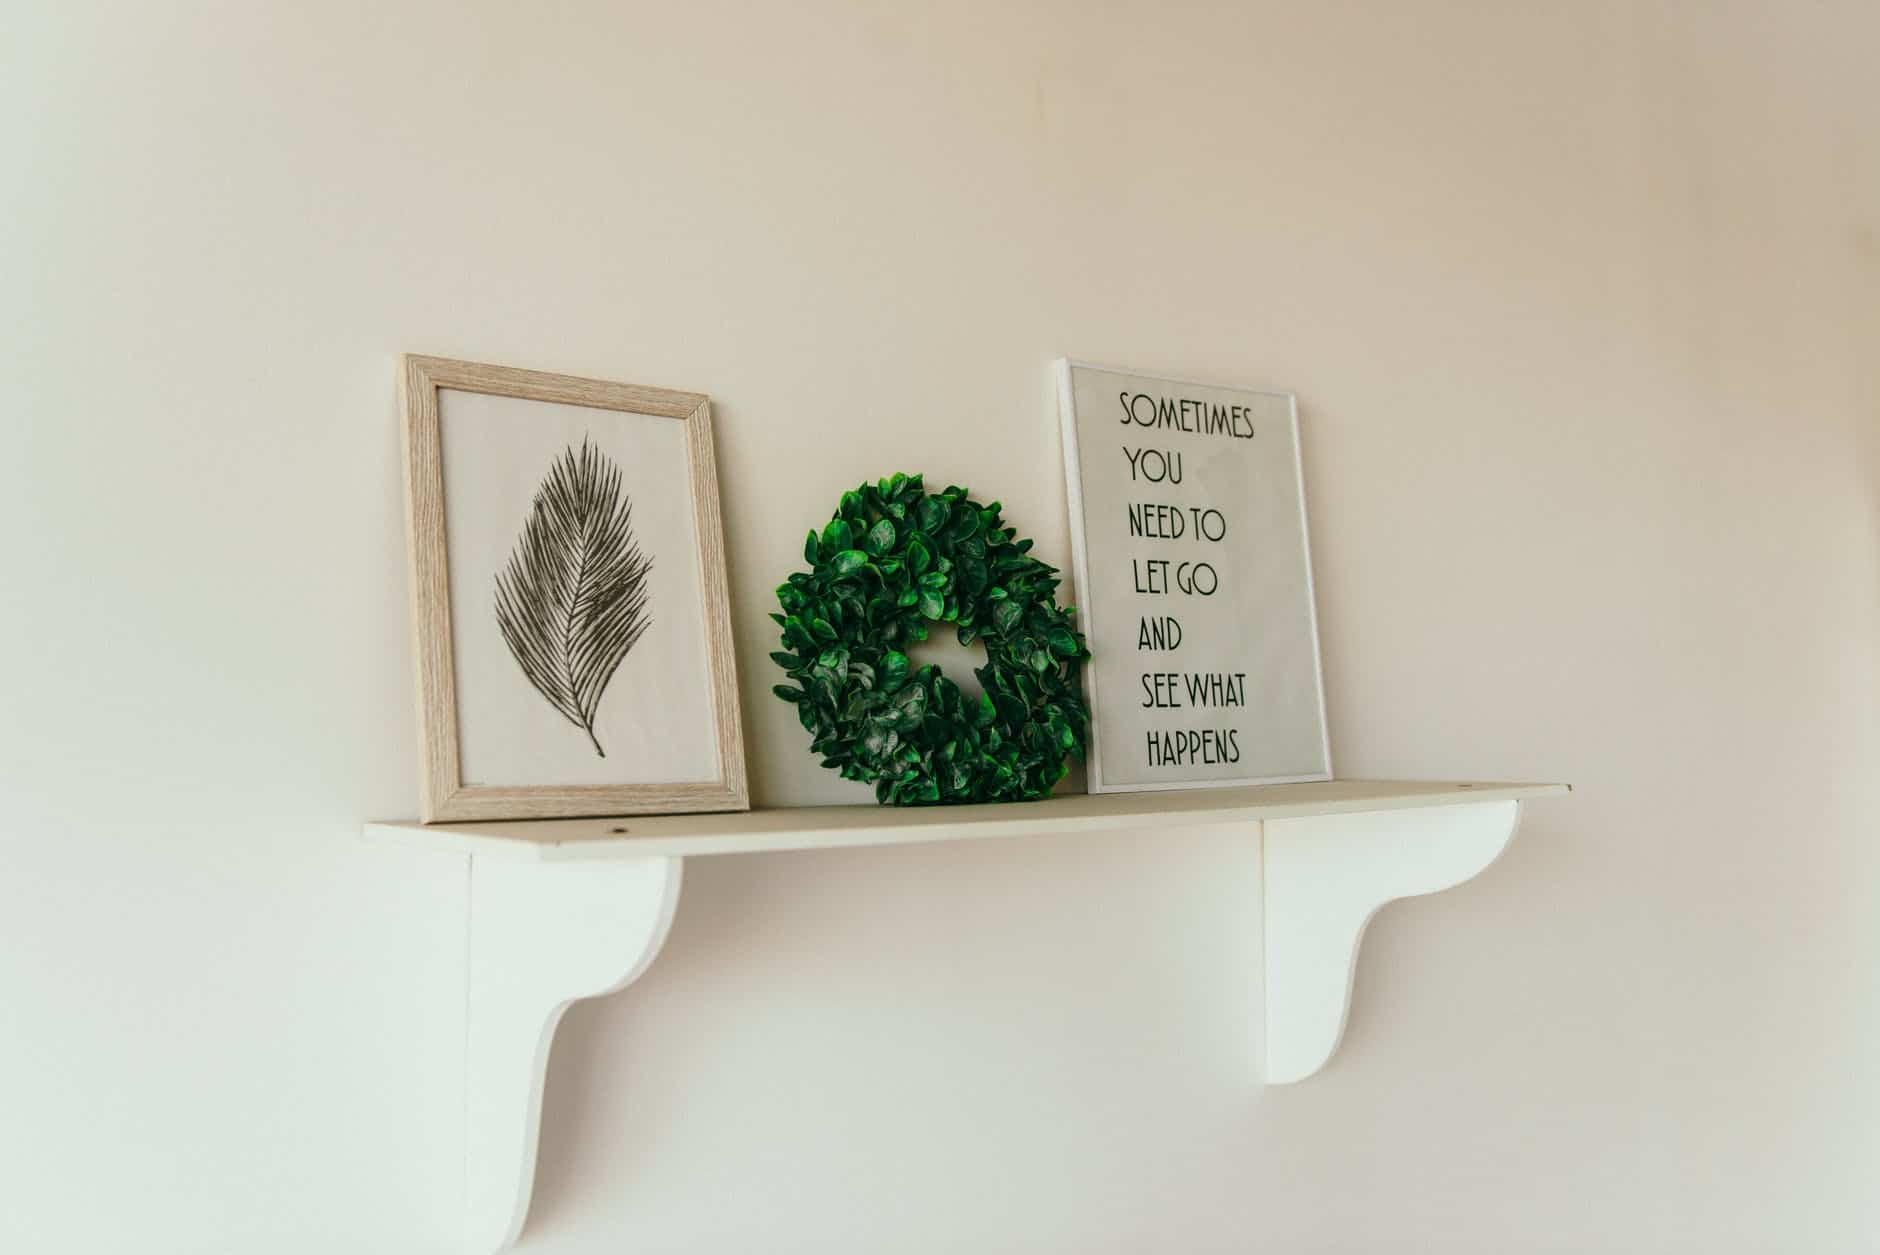 3 Crazy Home Art Décor You Would Instantly Love